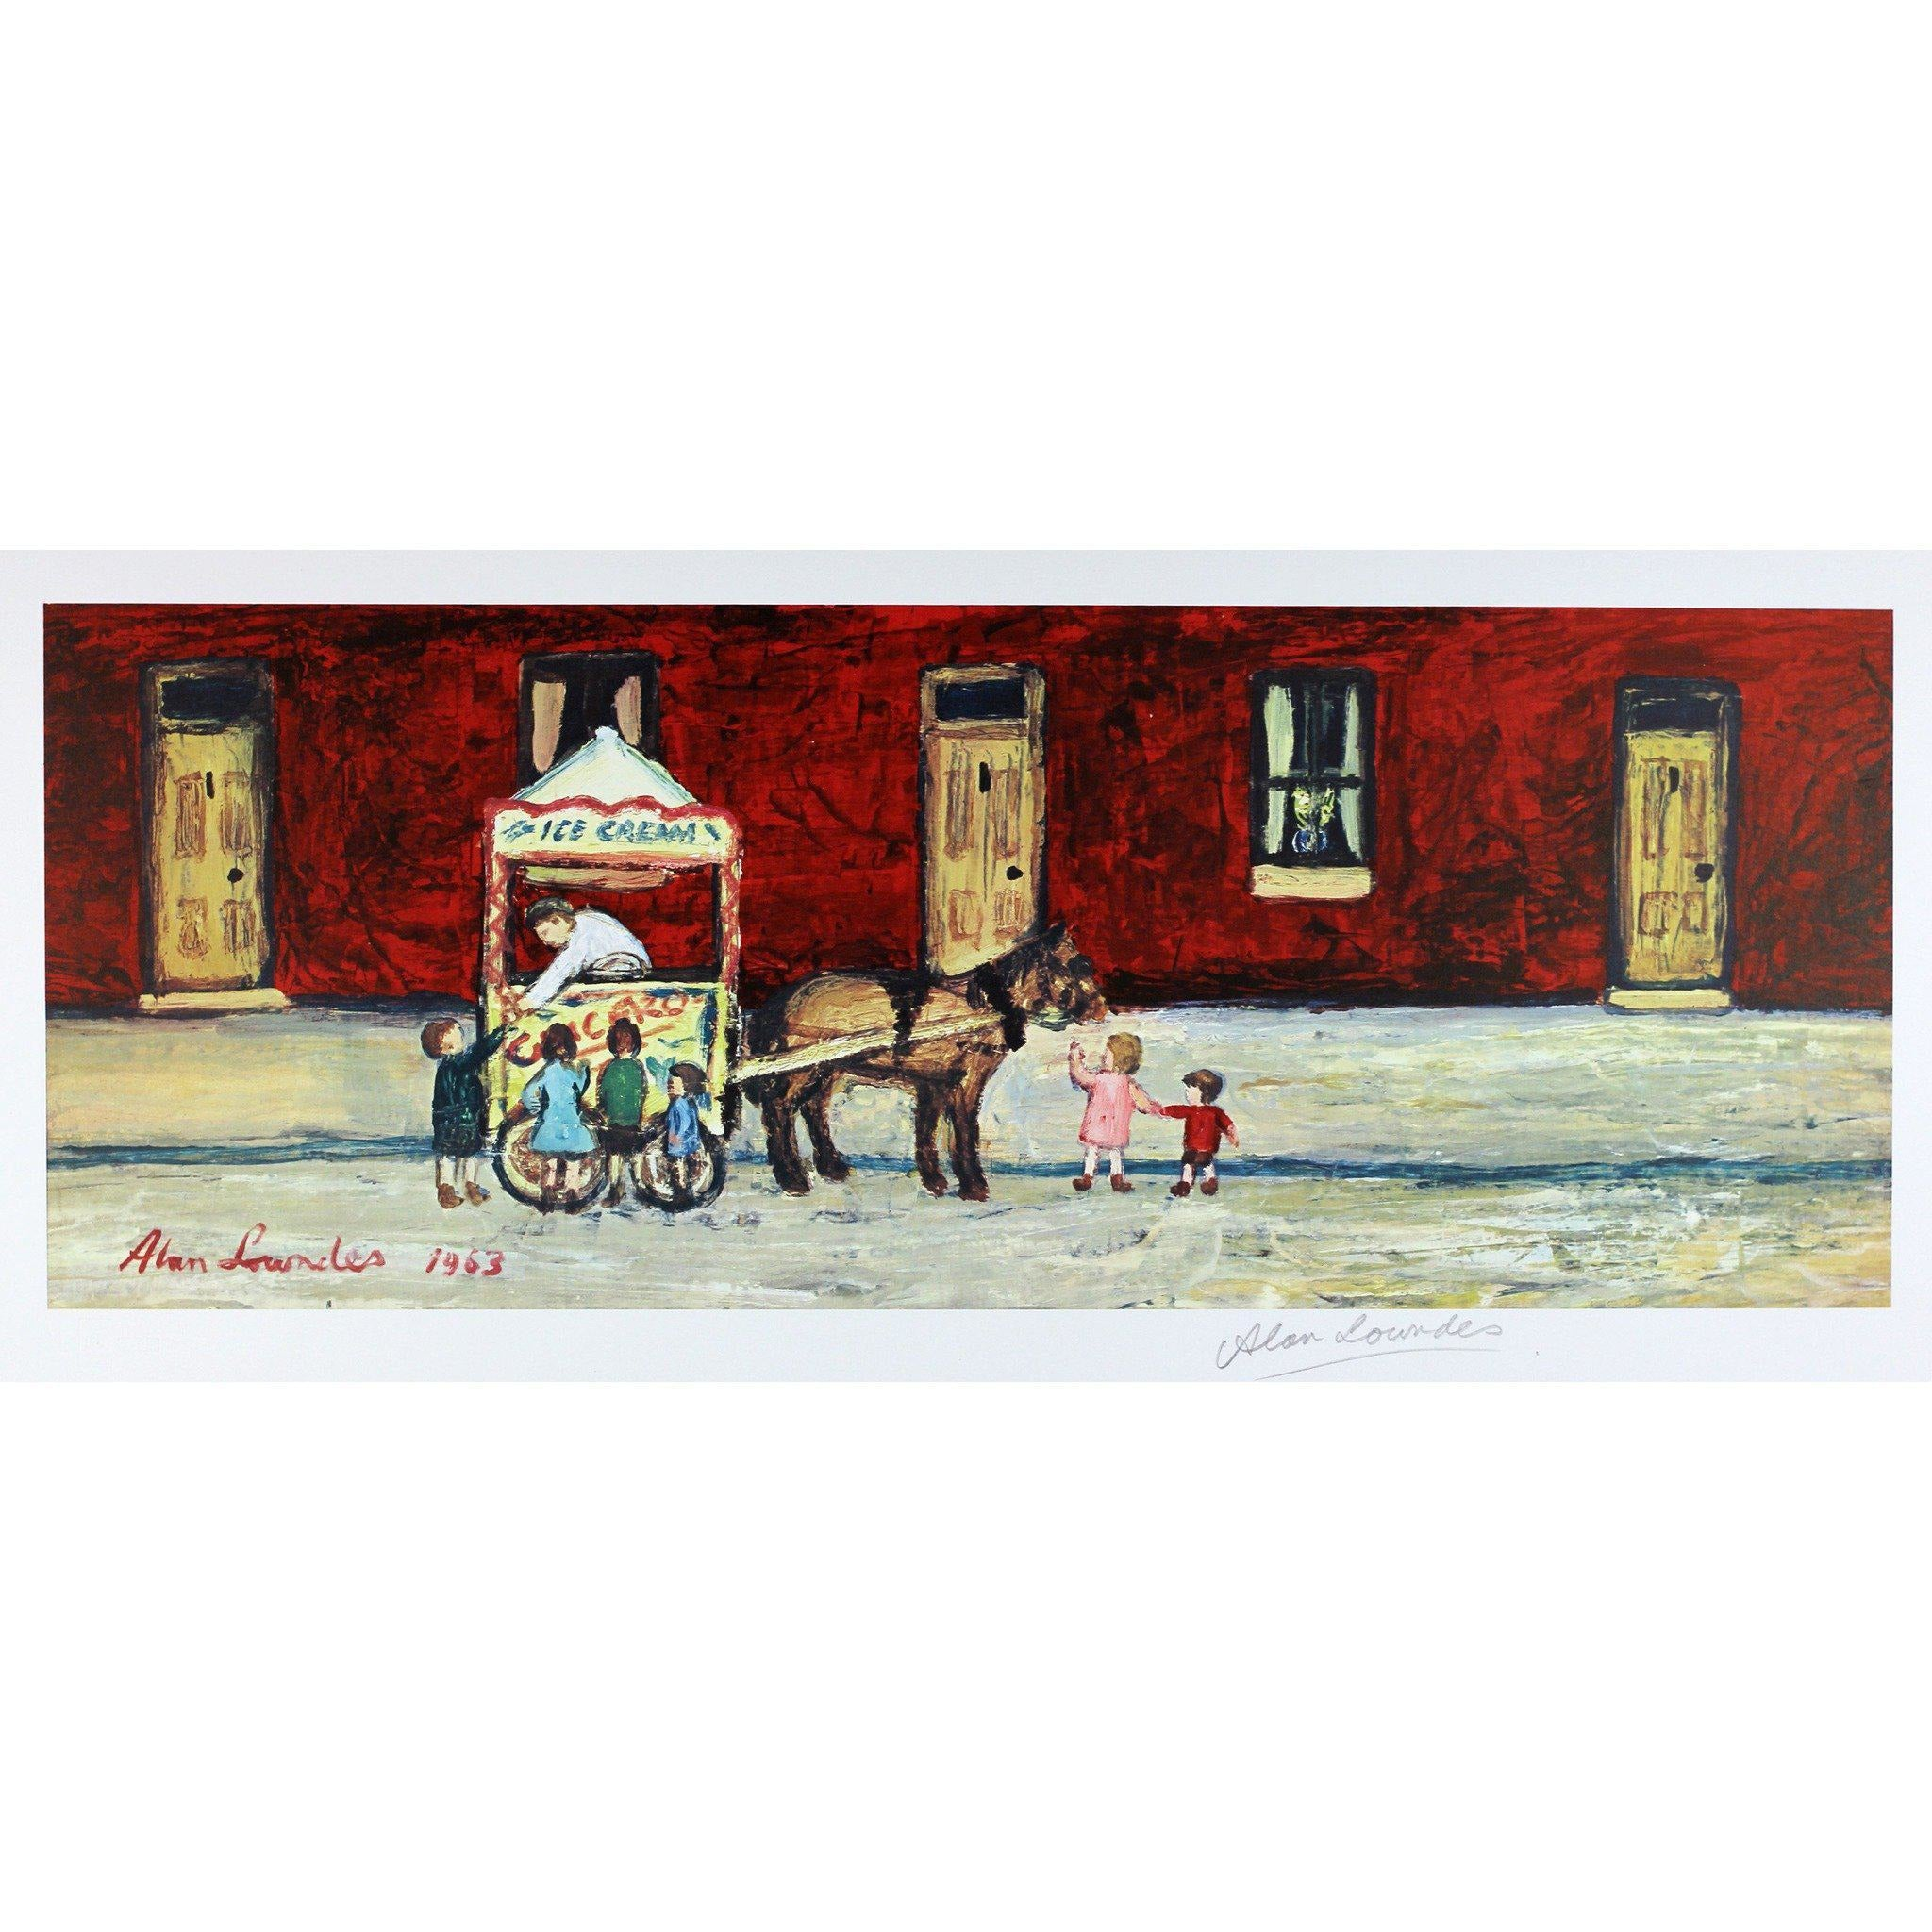 Alan Lowndes Print The Ice Cream Cart